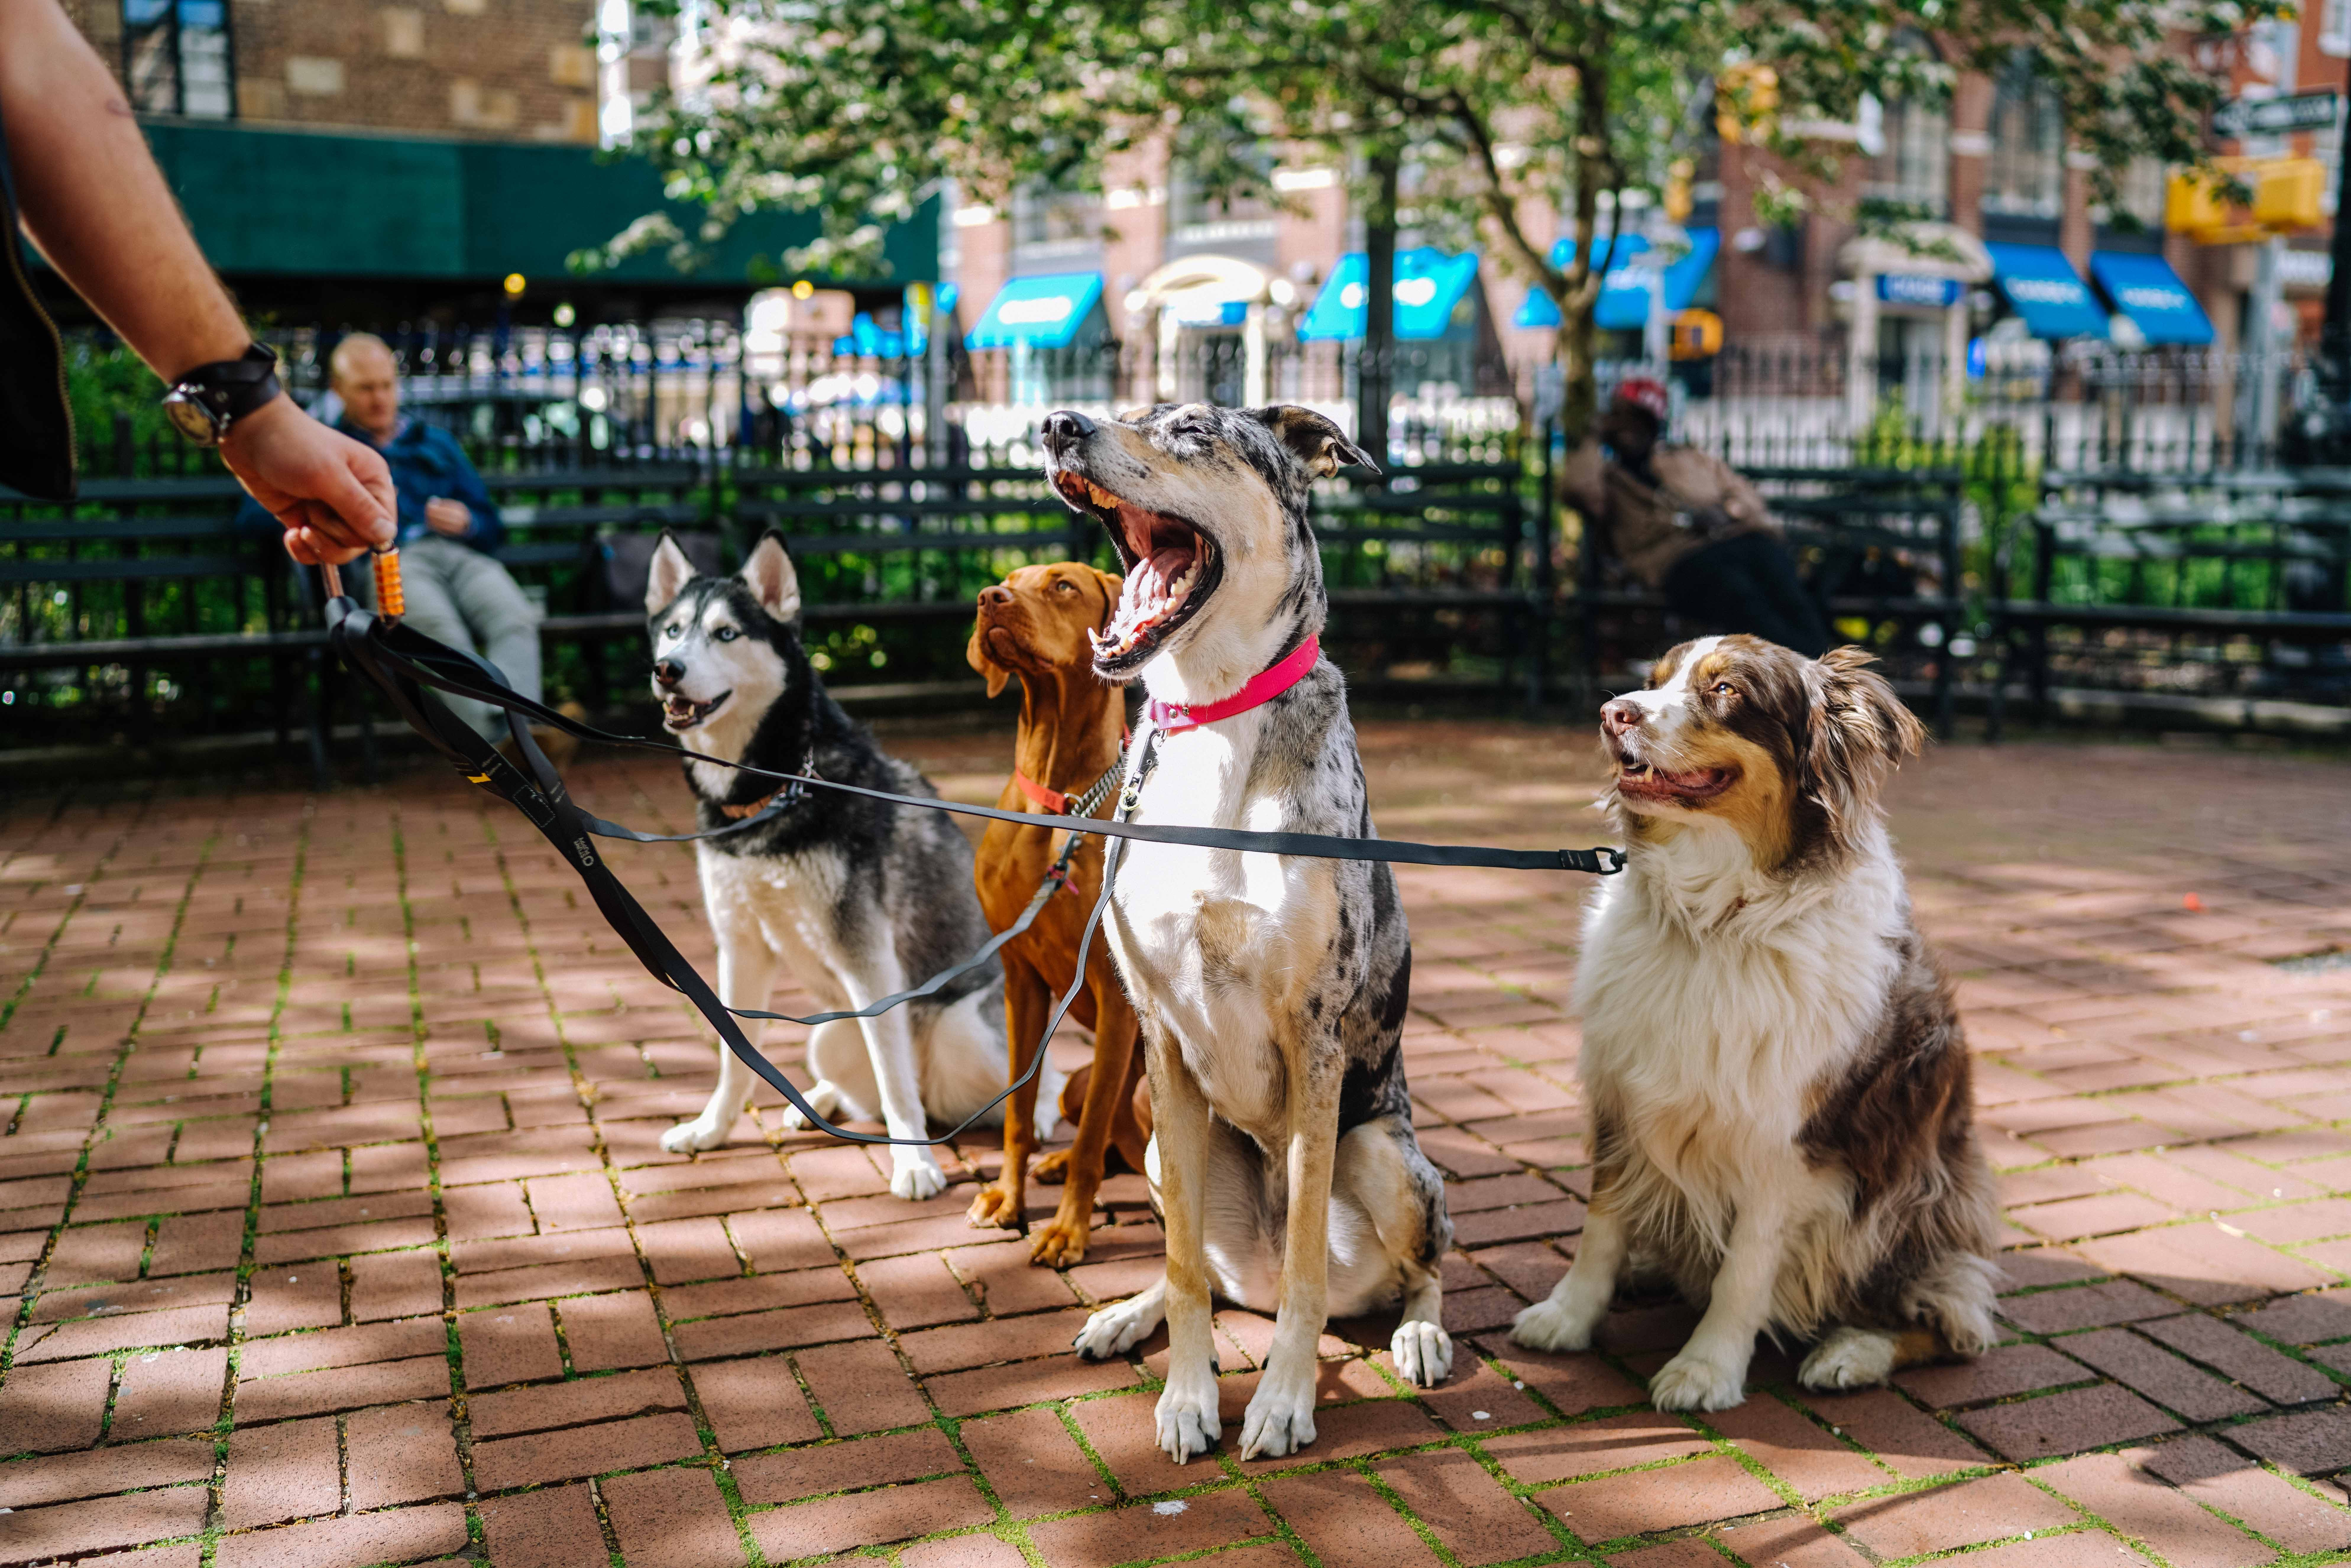 A group of dogs on a leash